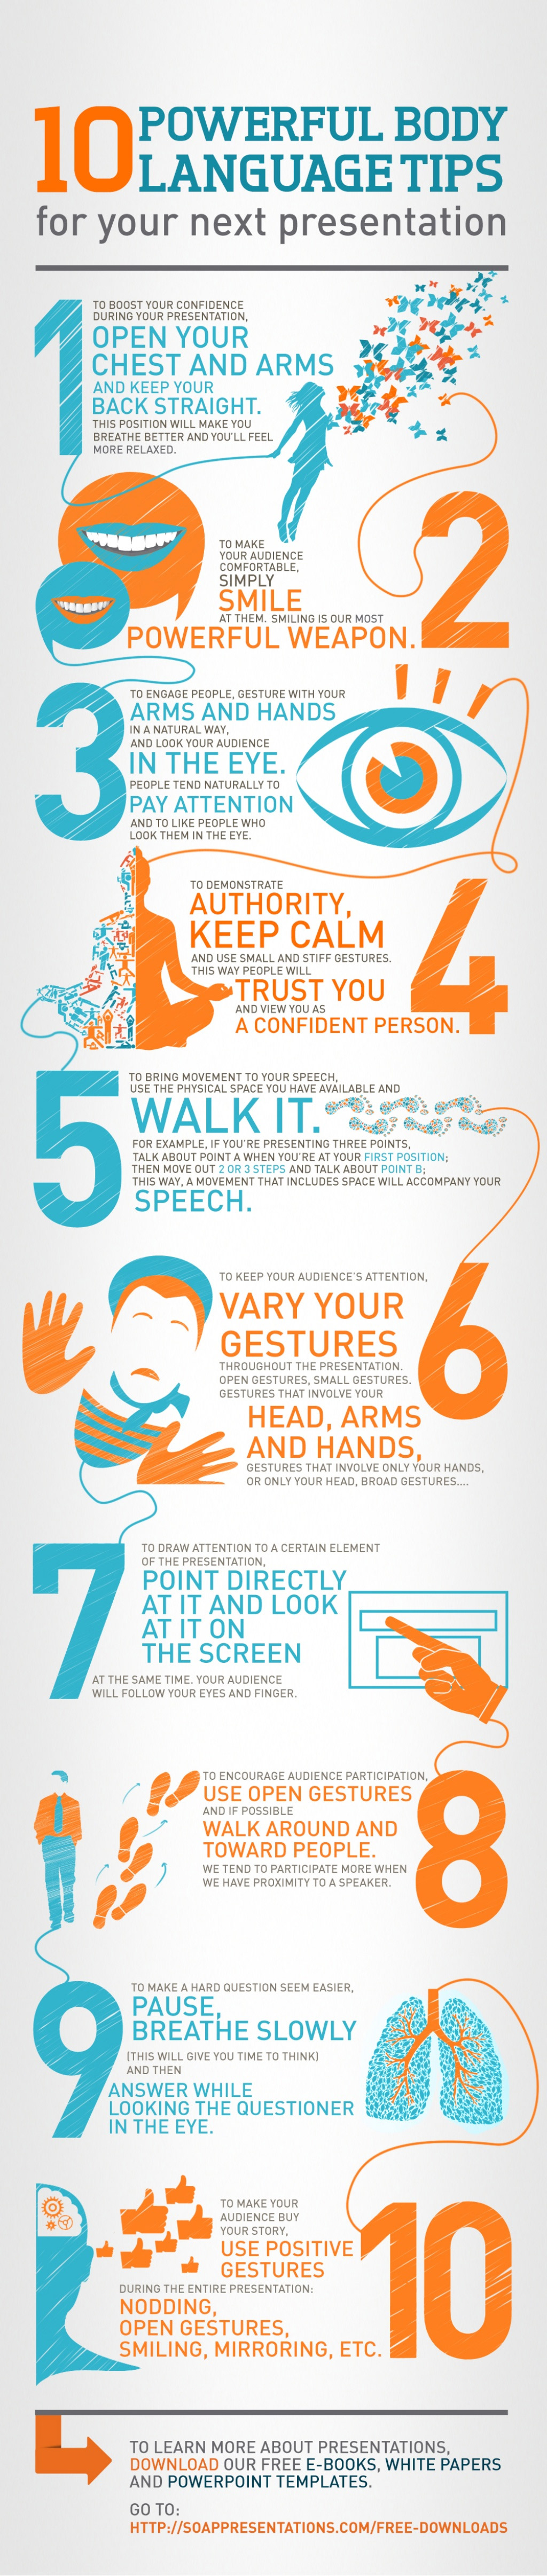 excellent graphic feauring 10 powerful body language tips